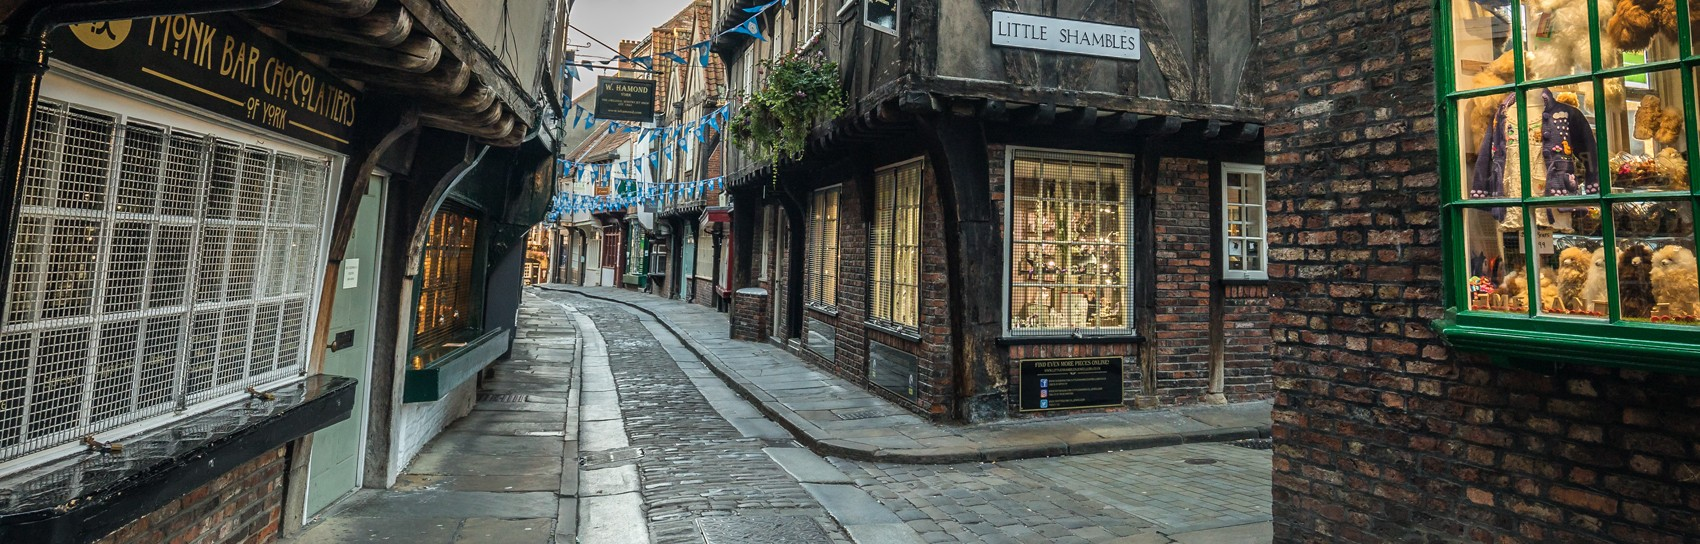 The Shambles in York in Yorkshire. Photograph by DAVE ZDANOWICZ